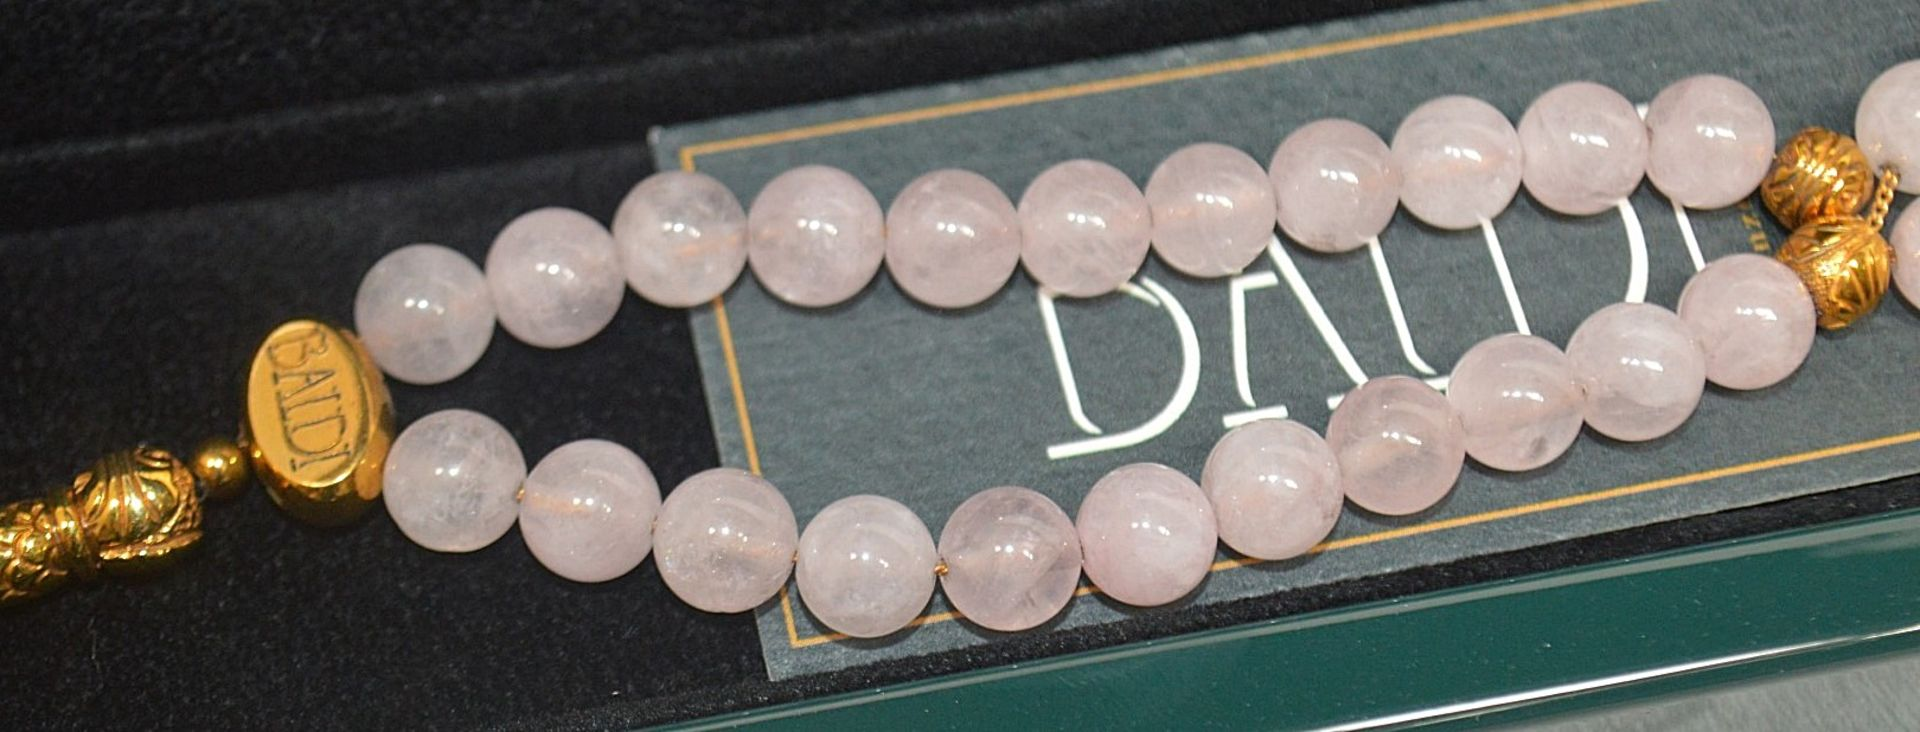 1 x BALDI 'Home Jewels' Italian Hand-crafted Artisan MISBAHA Prayer Beads In Pink Quartz And Gold - Image 4 of 5